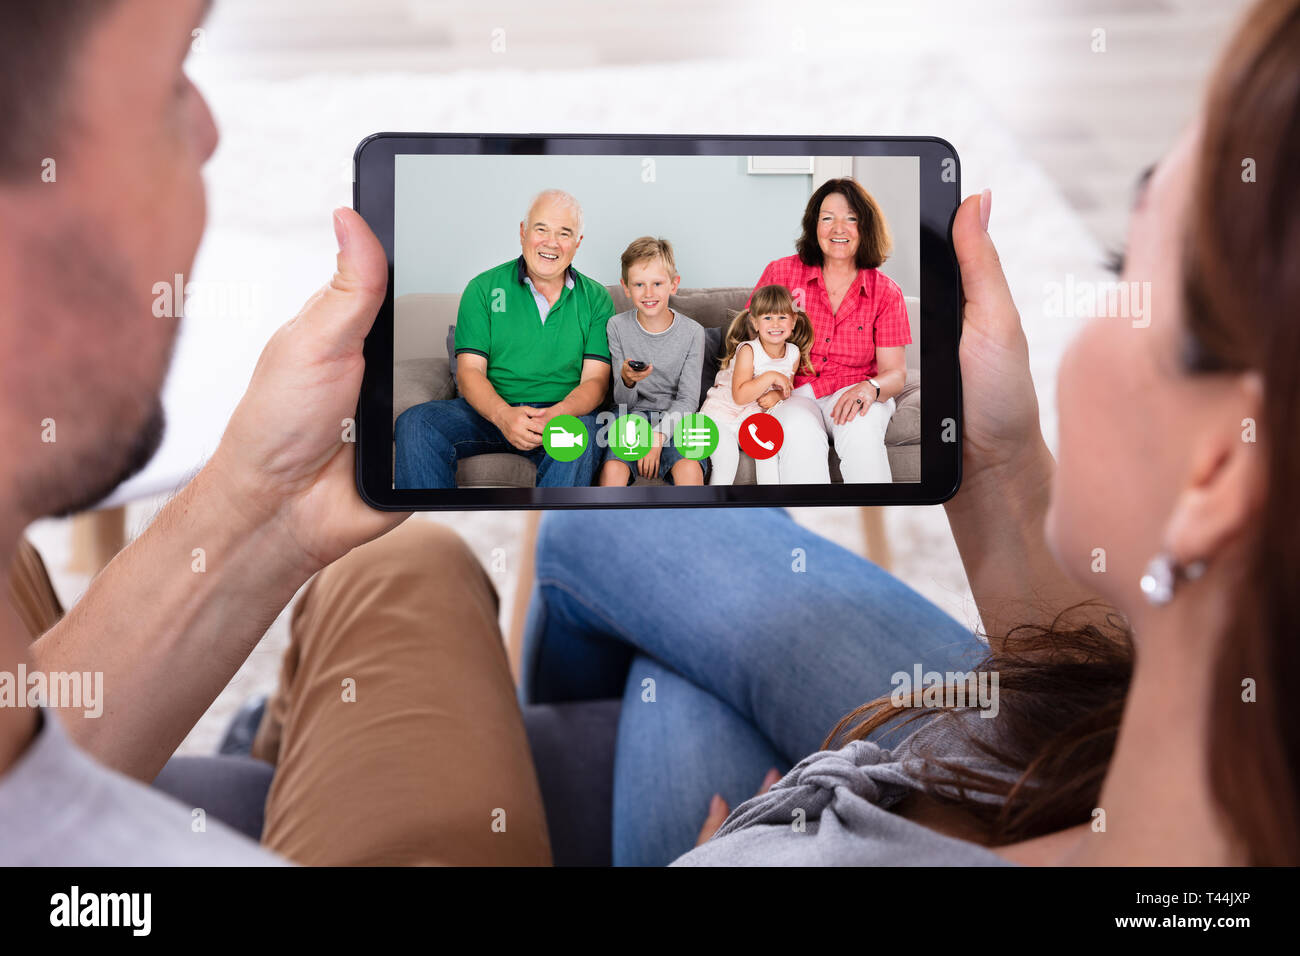 Couple Sitting On Sofa Video Conferencing With Their Happy Family Using Digital Tablet - Stock Image